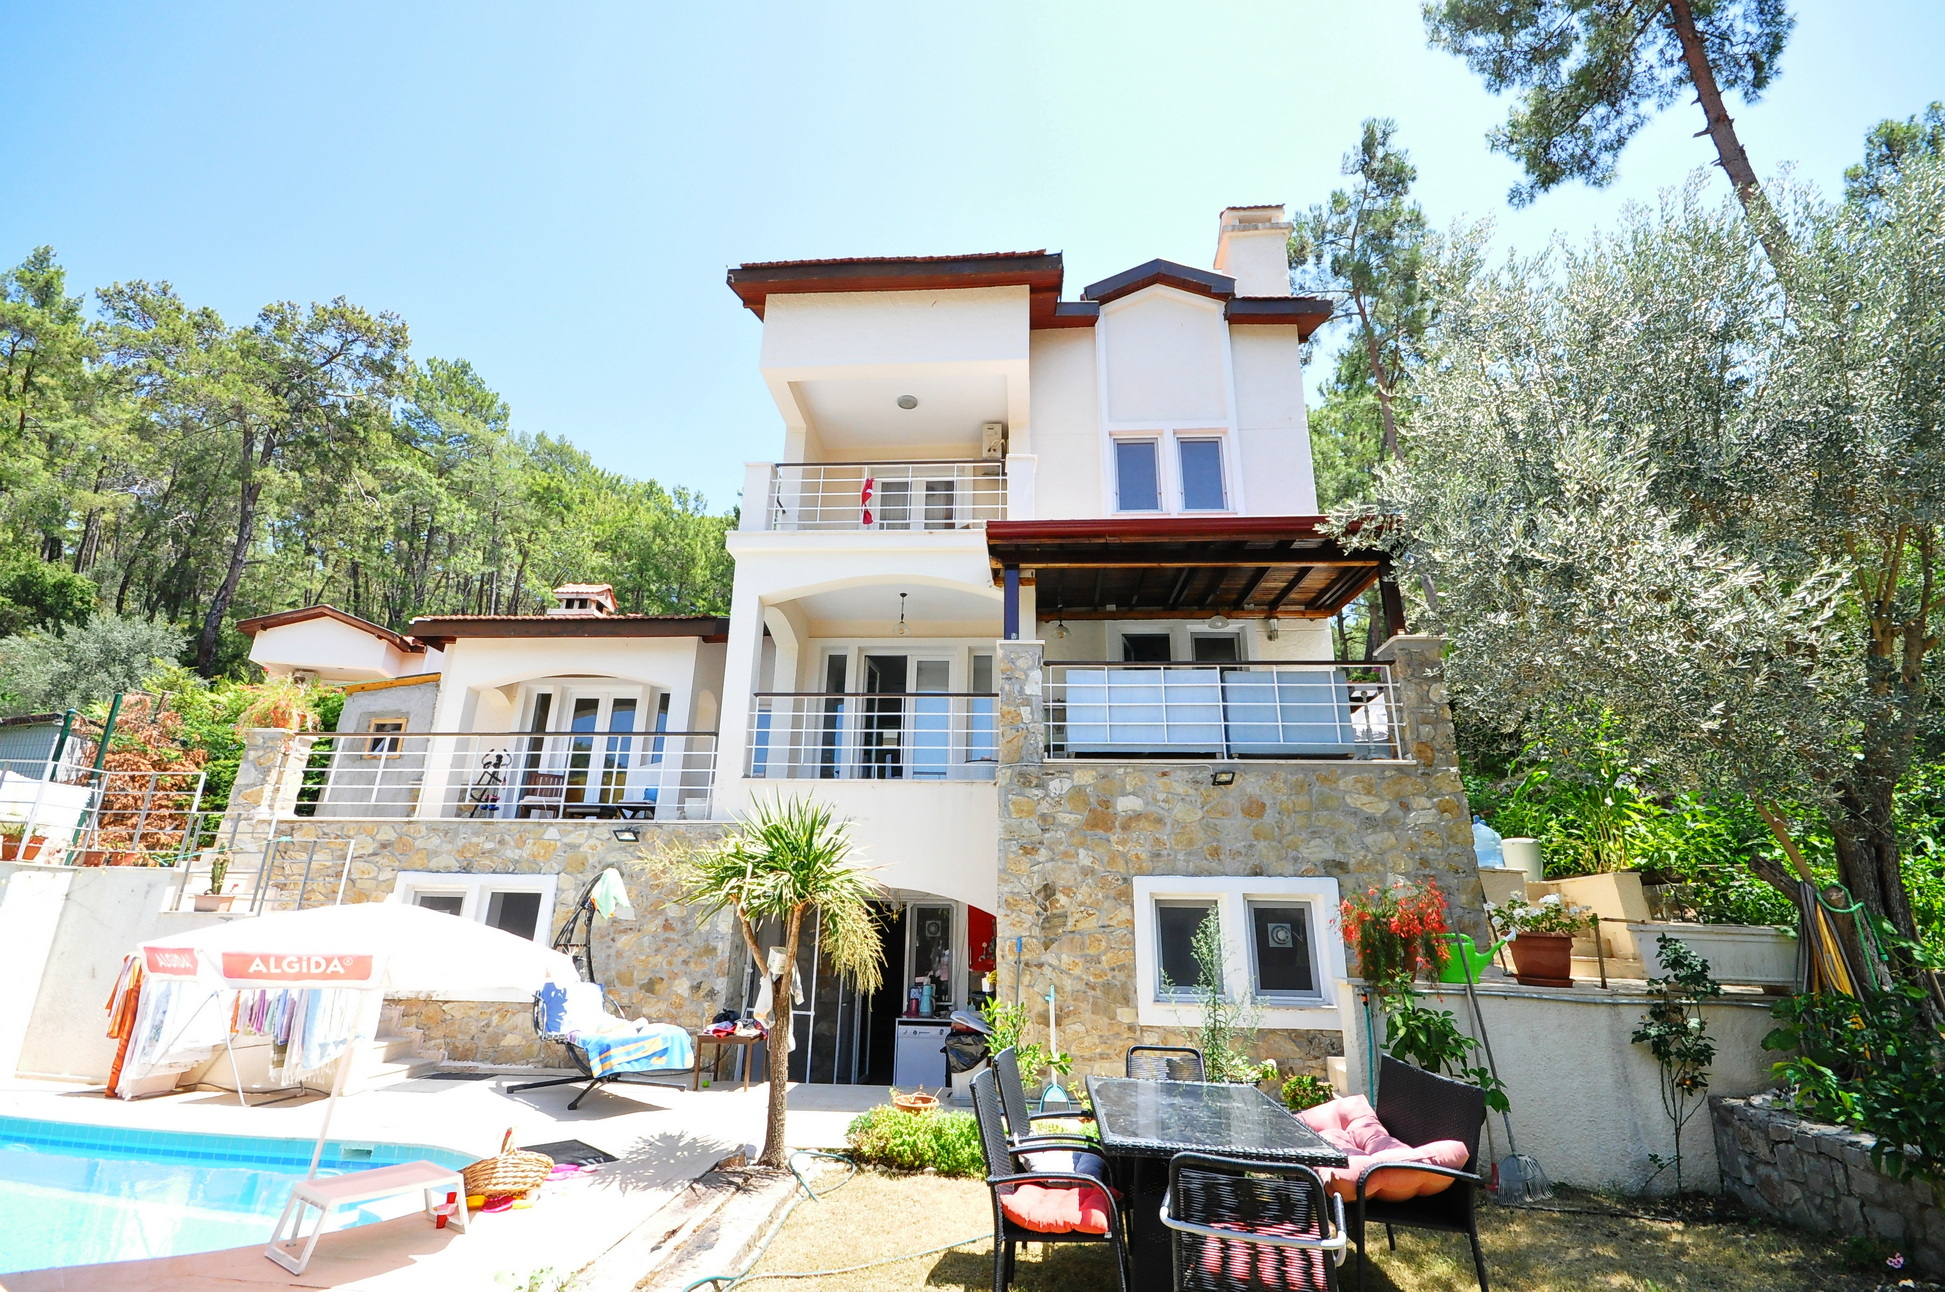 6 Bedroom Spacious Detached Villa in Gocek with Large Private Garden and Pool